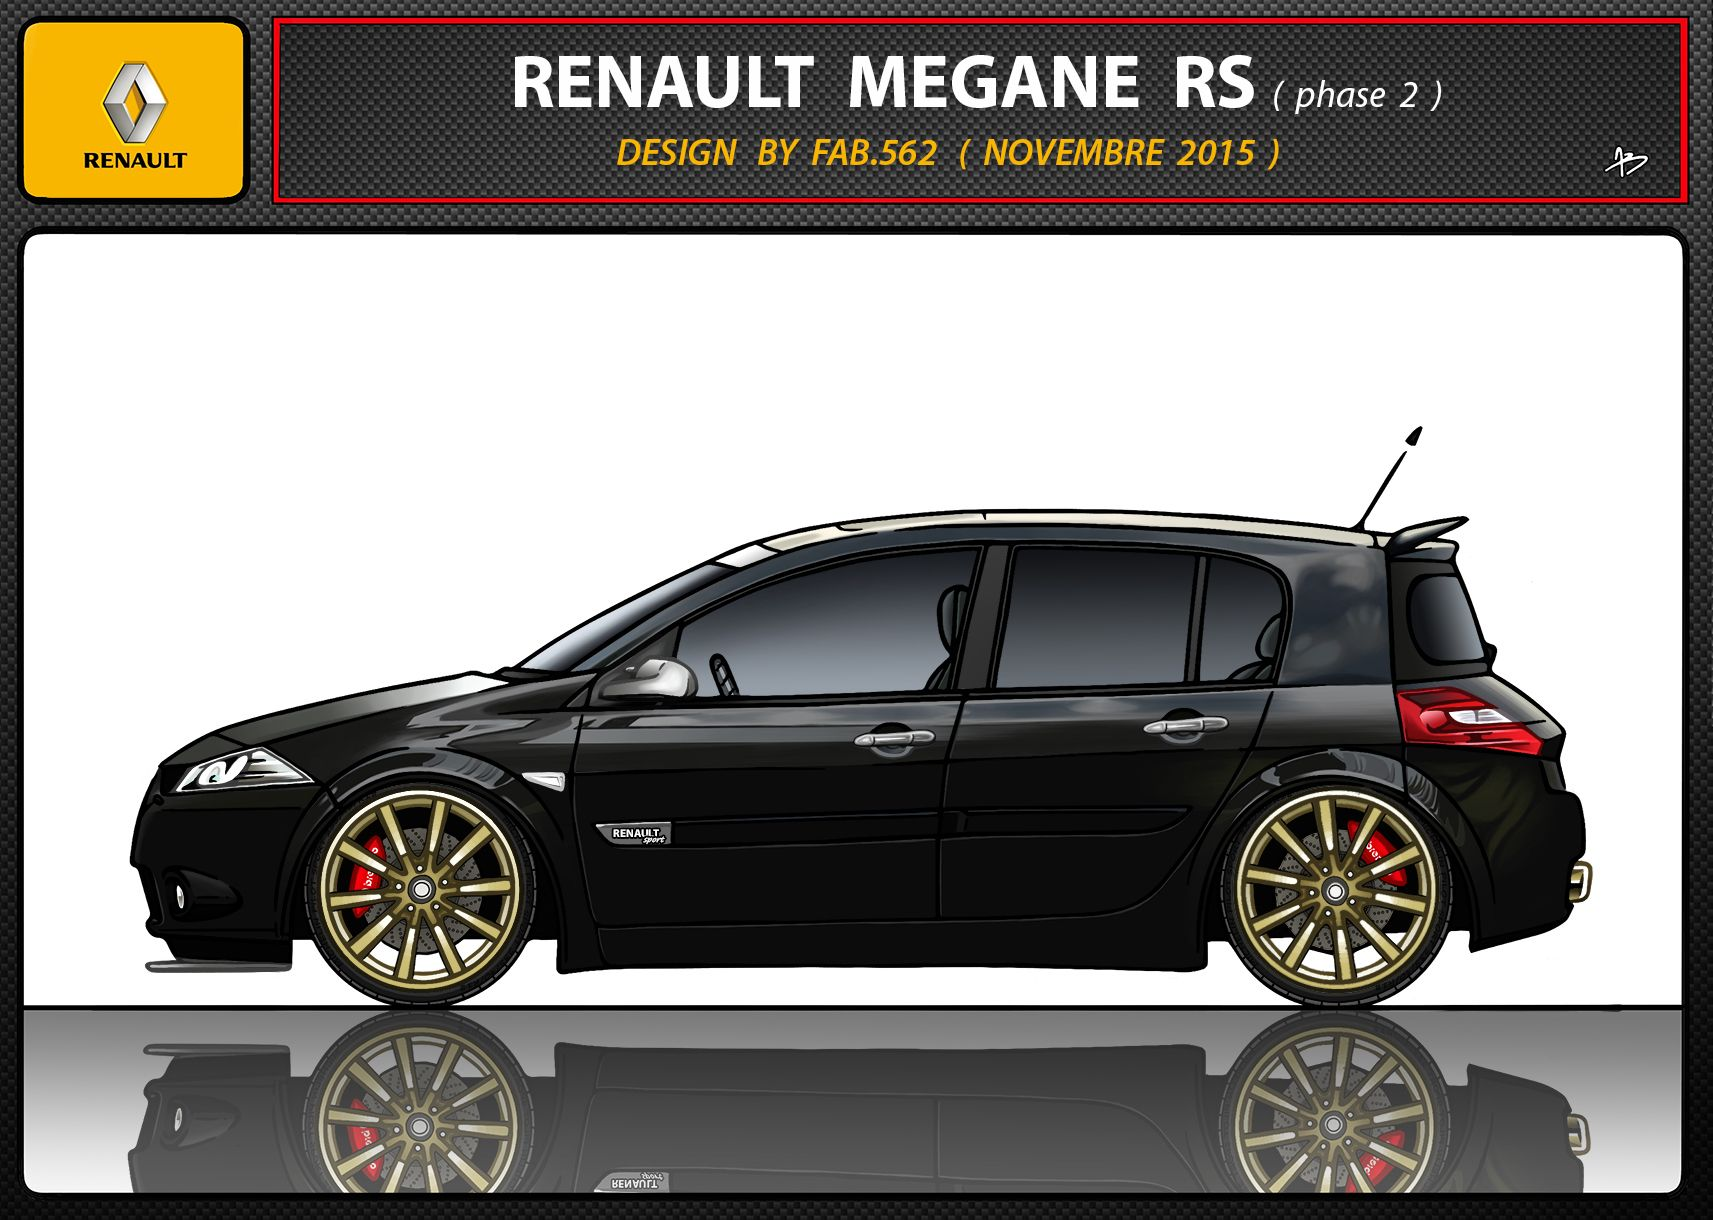 renault megane rs tuning modified cars gt sportive cars. Black Bedroom Furniture Sets. Home Design Ideas